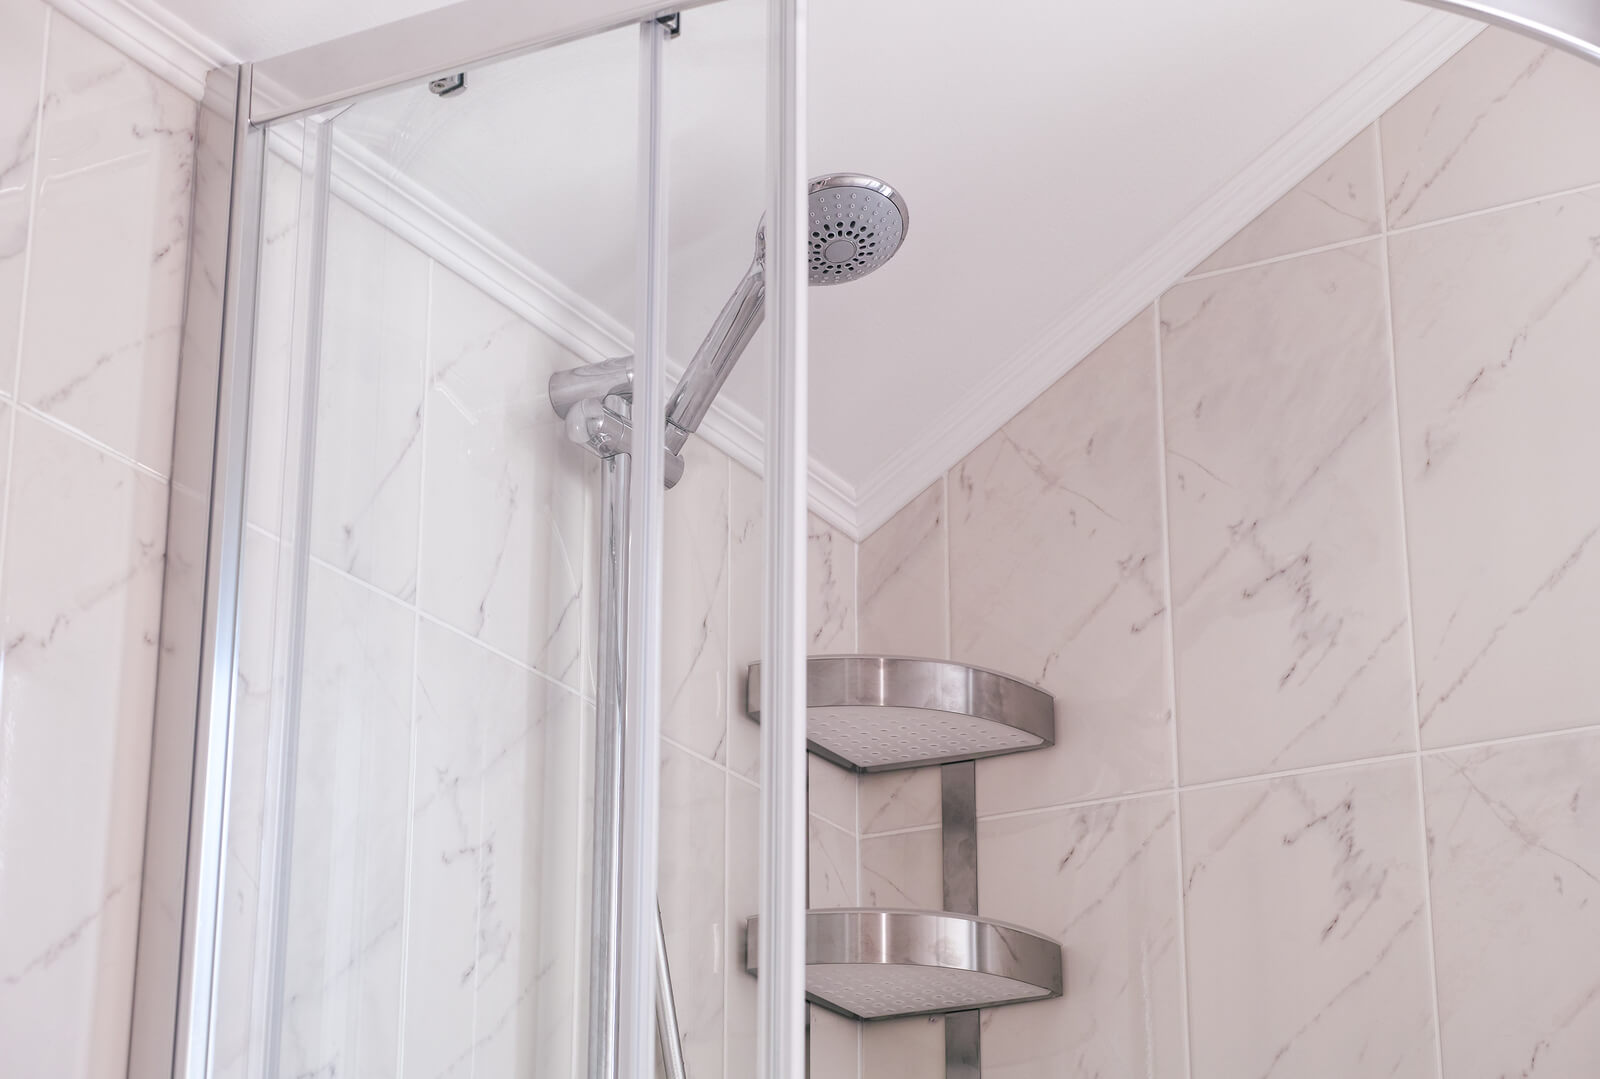 How To Install A Direct To Stud Tub Or Shower Surround Pratt Plumbing